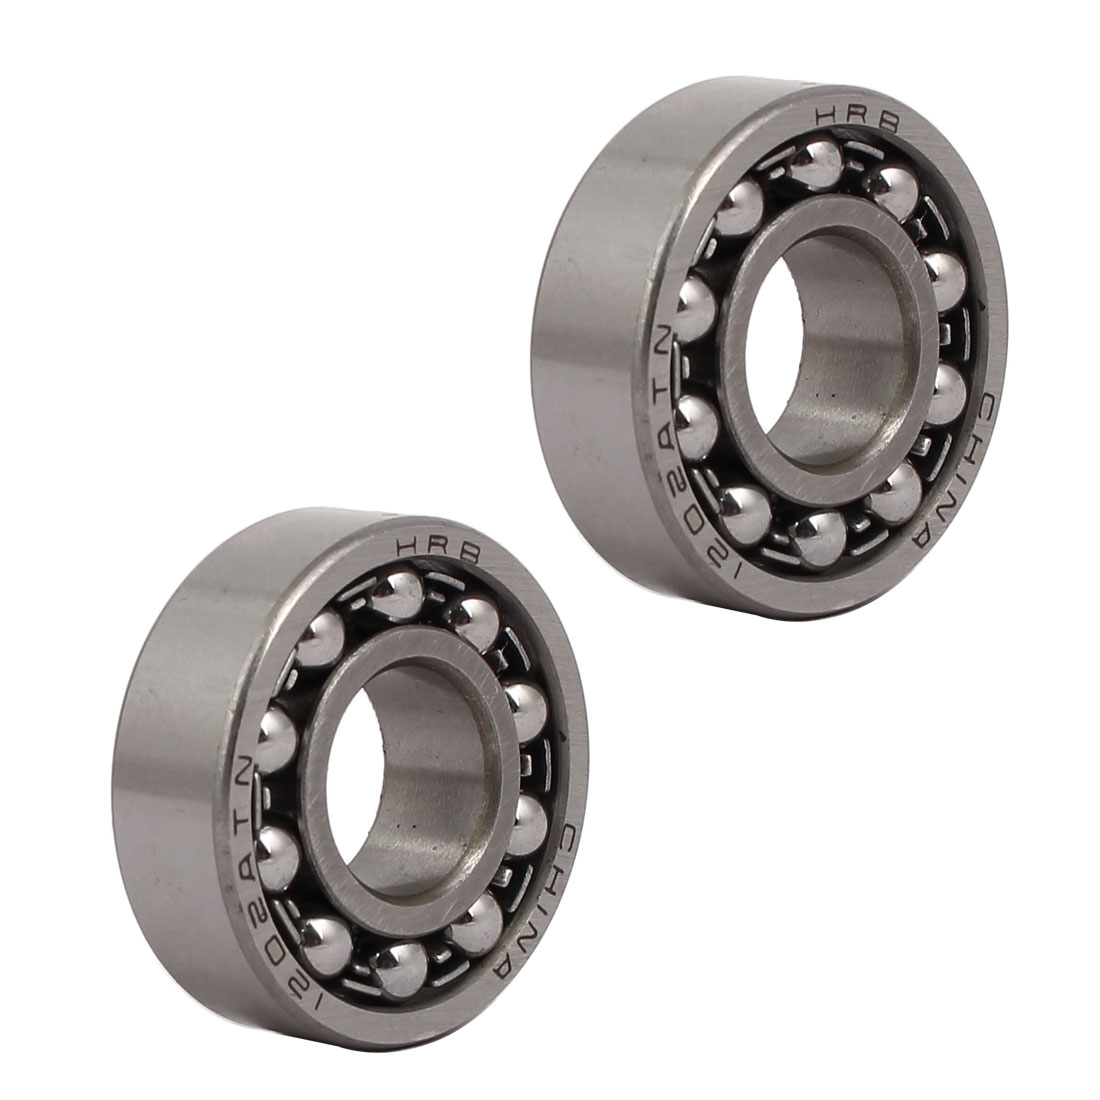 35mmx15mmx11mm 1202 Double Row Self-Aligning Ball Bearing 2pcs